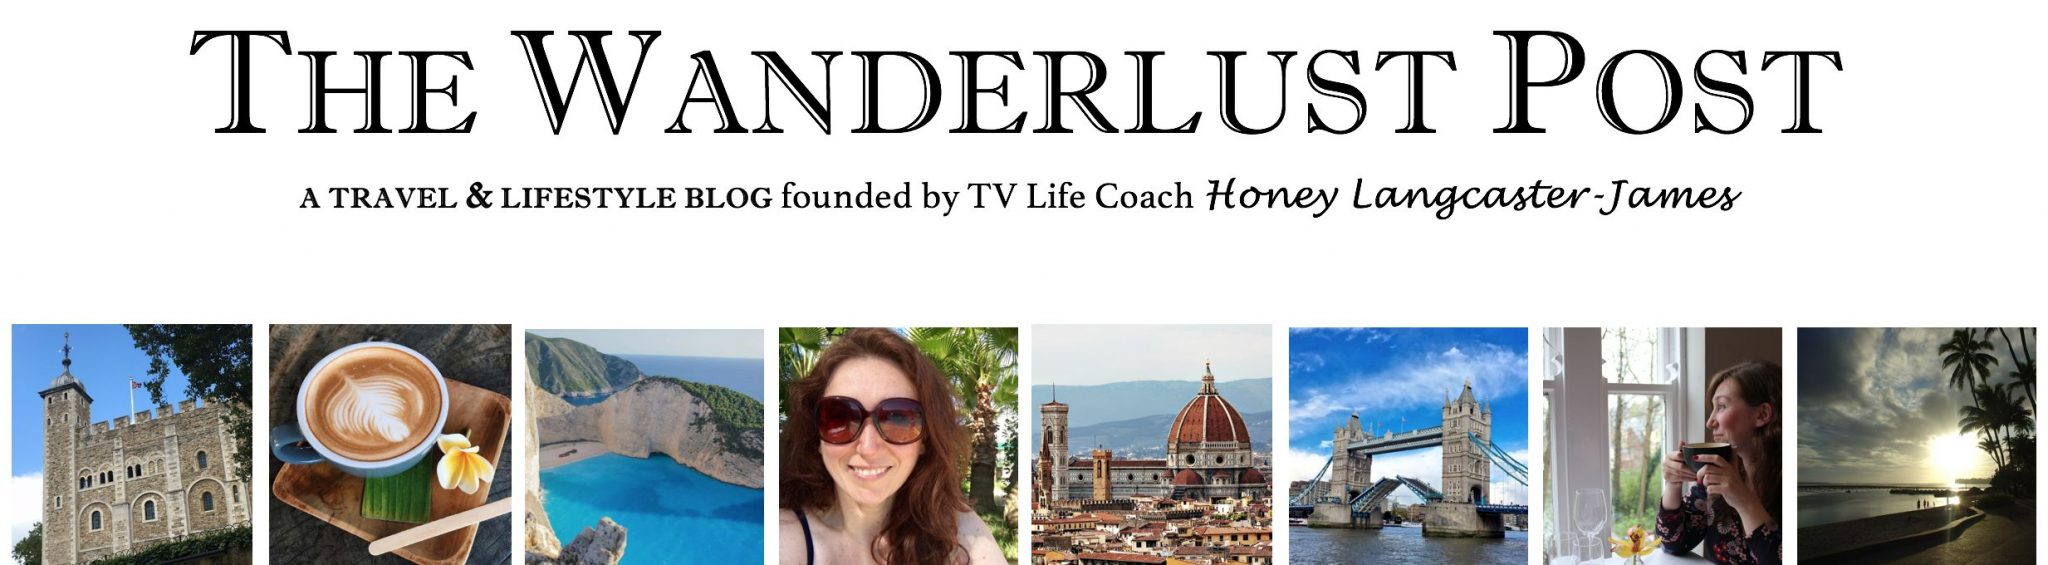 THE WANDERLUST POST - A Top UK Travel & Lifestyle Blog founded by TV Life Coach Honey Langcaster-James